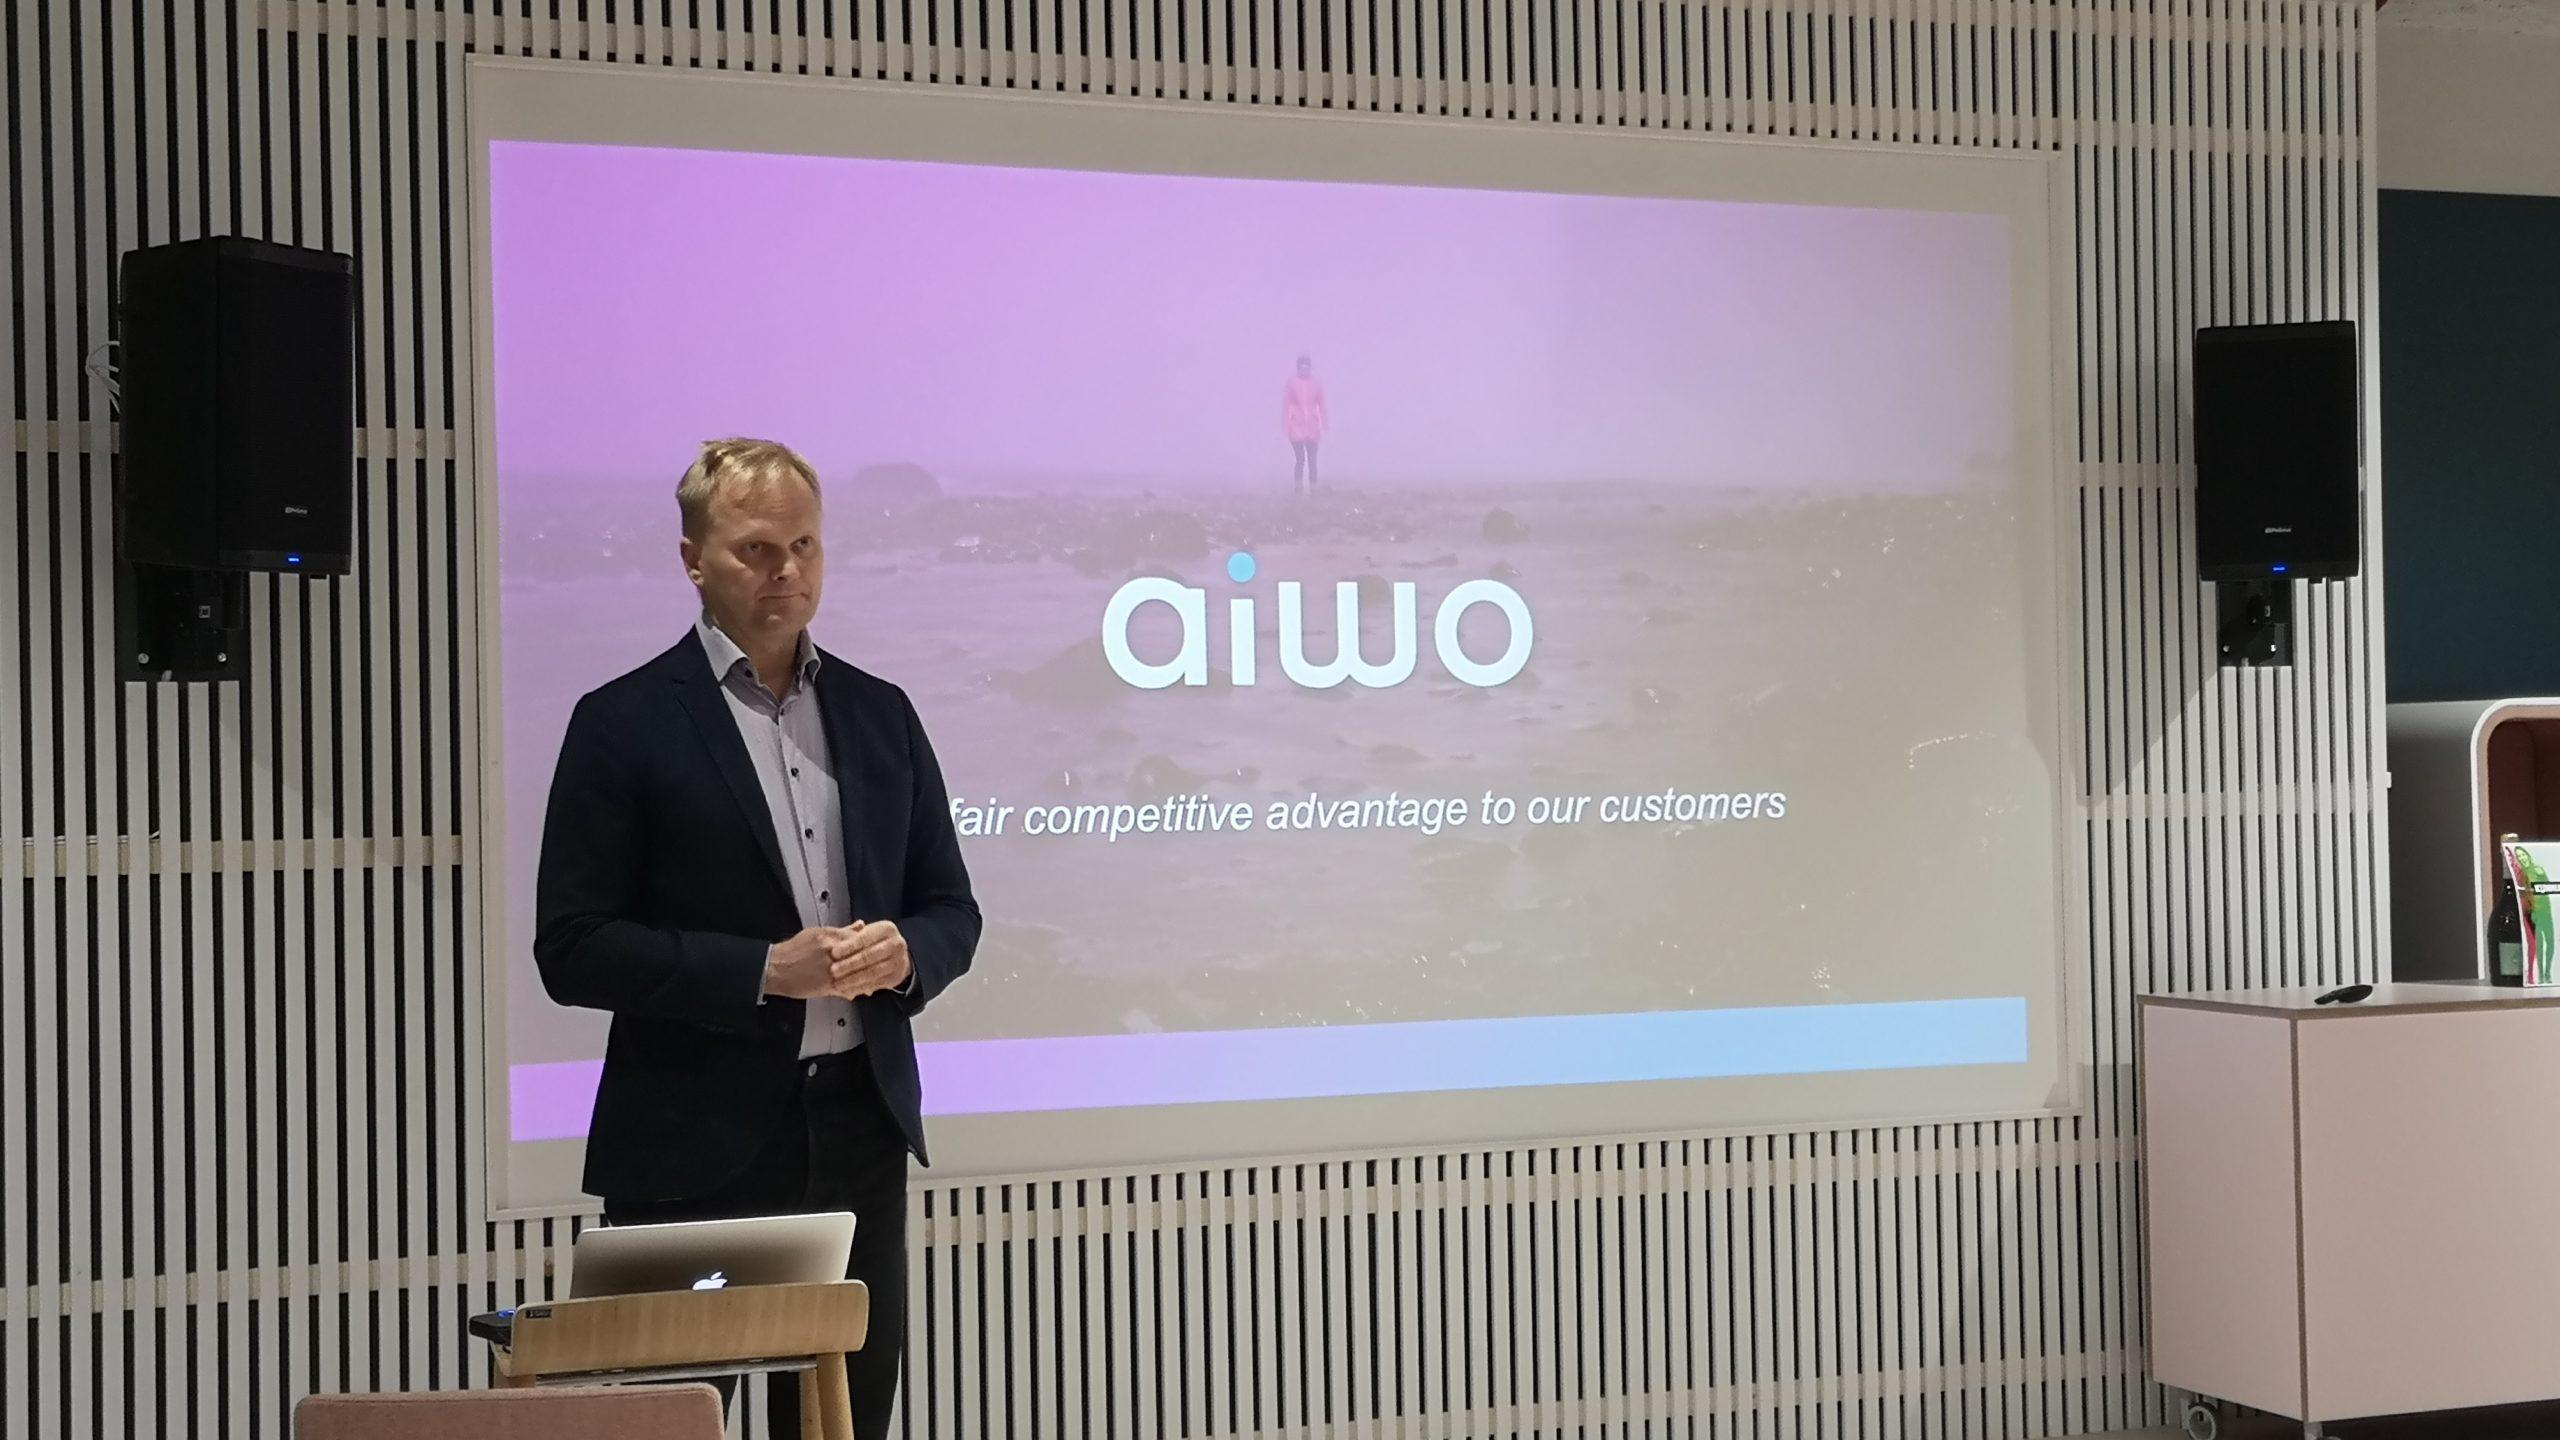 Aiwo has won a pitching competition to drive its international growth